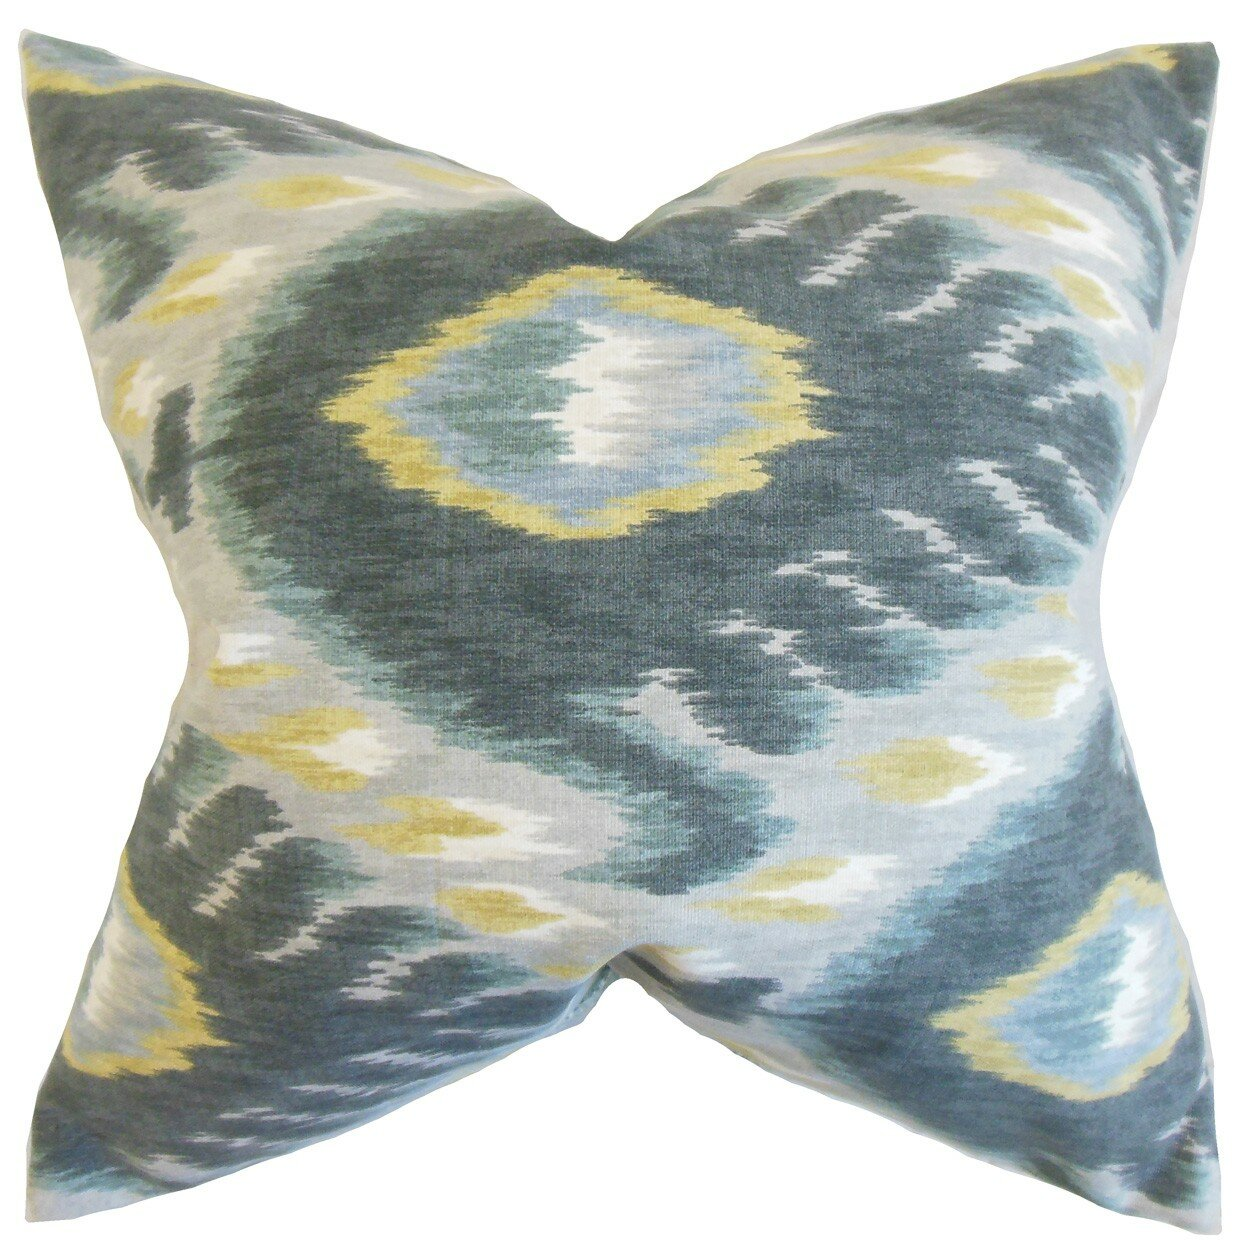 The Pillow Collection Barnum Ikat Outdoor Throw Pillow Cover